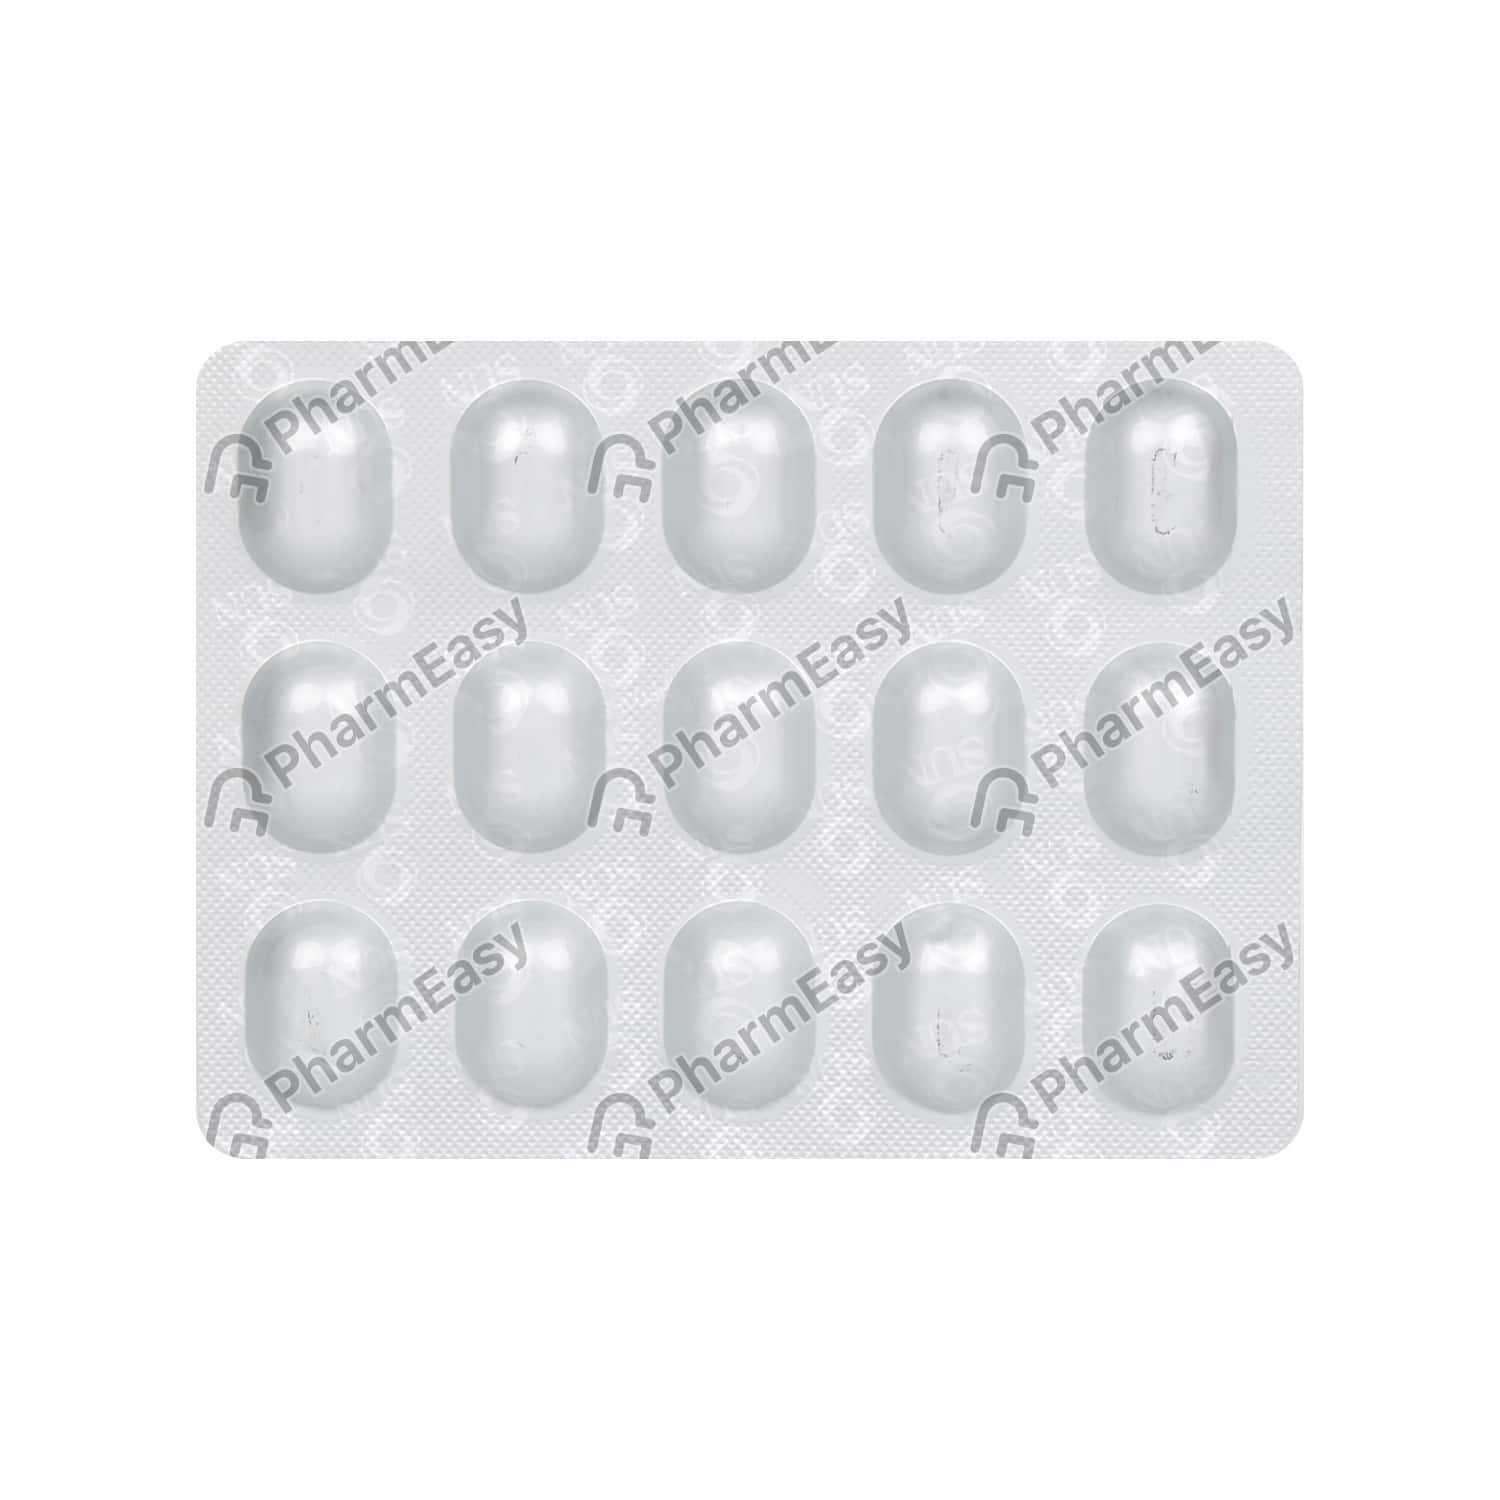 Storvas 20mg Strip Of 15 Tablets